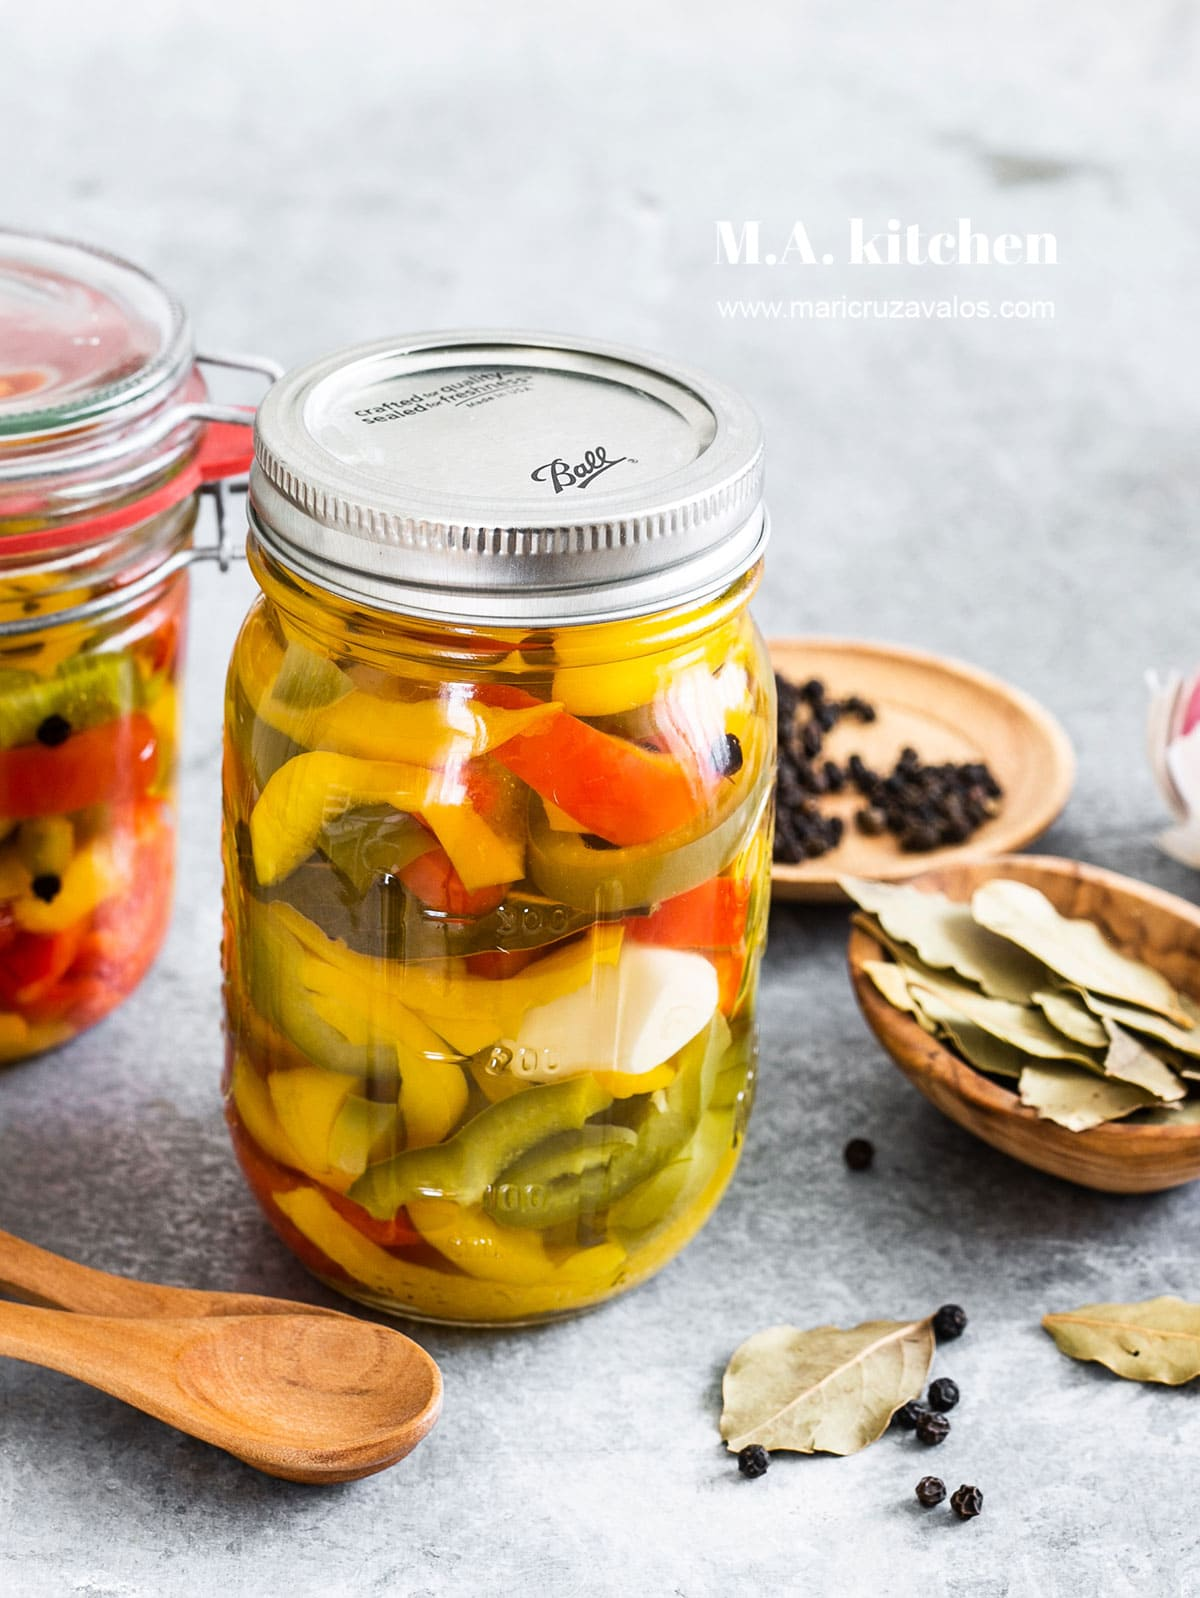 Peperoni sotto aceto. Aka, Italian pickled peppers.